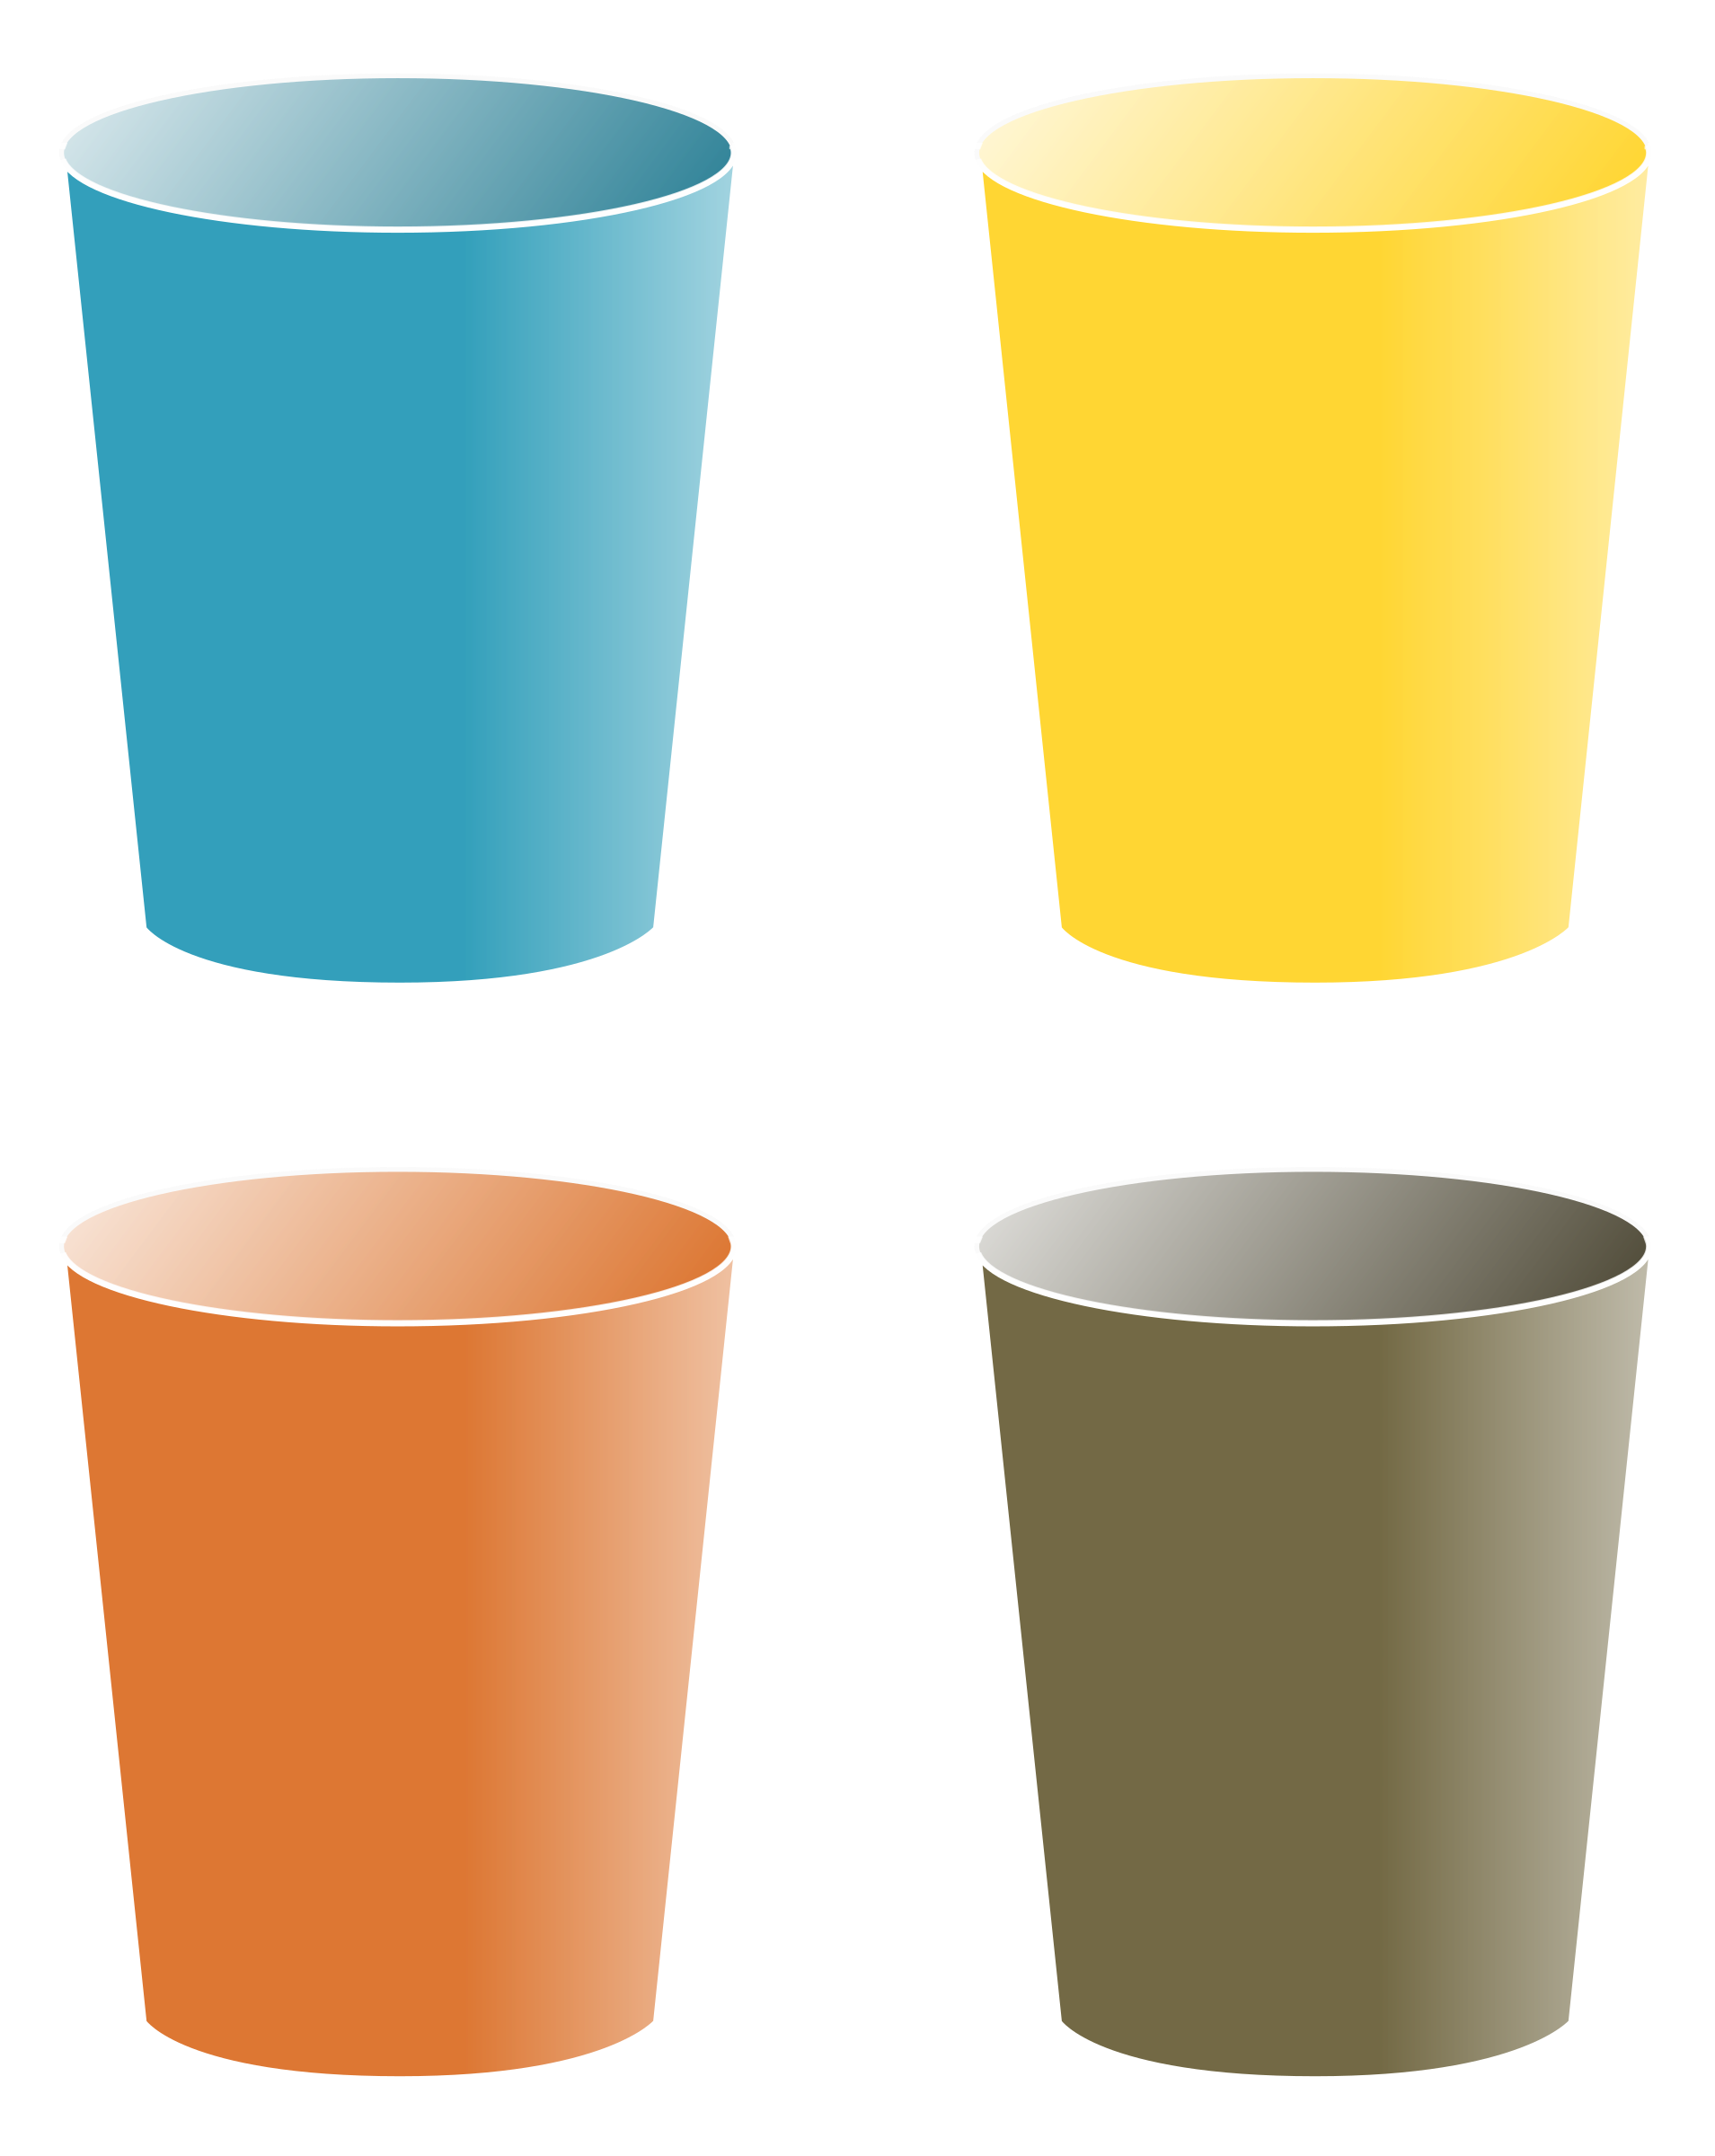 Cups clipart. Big image png